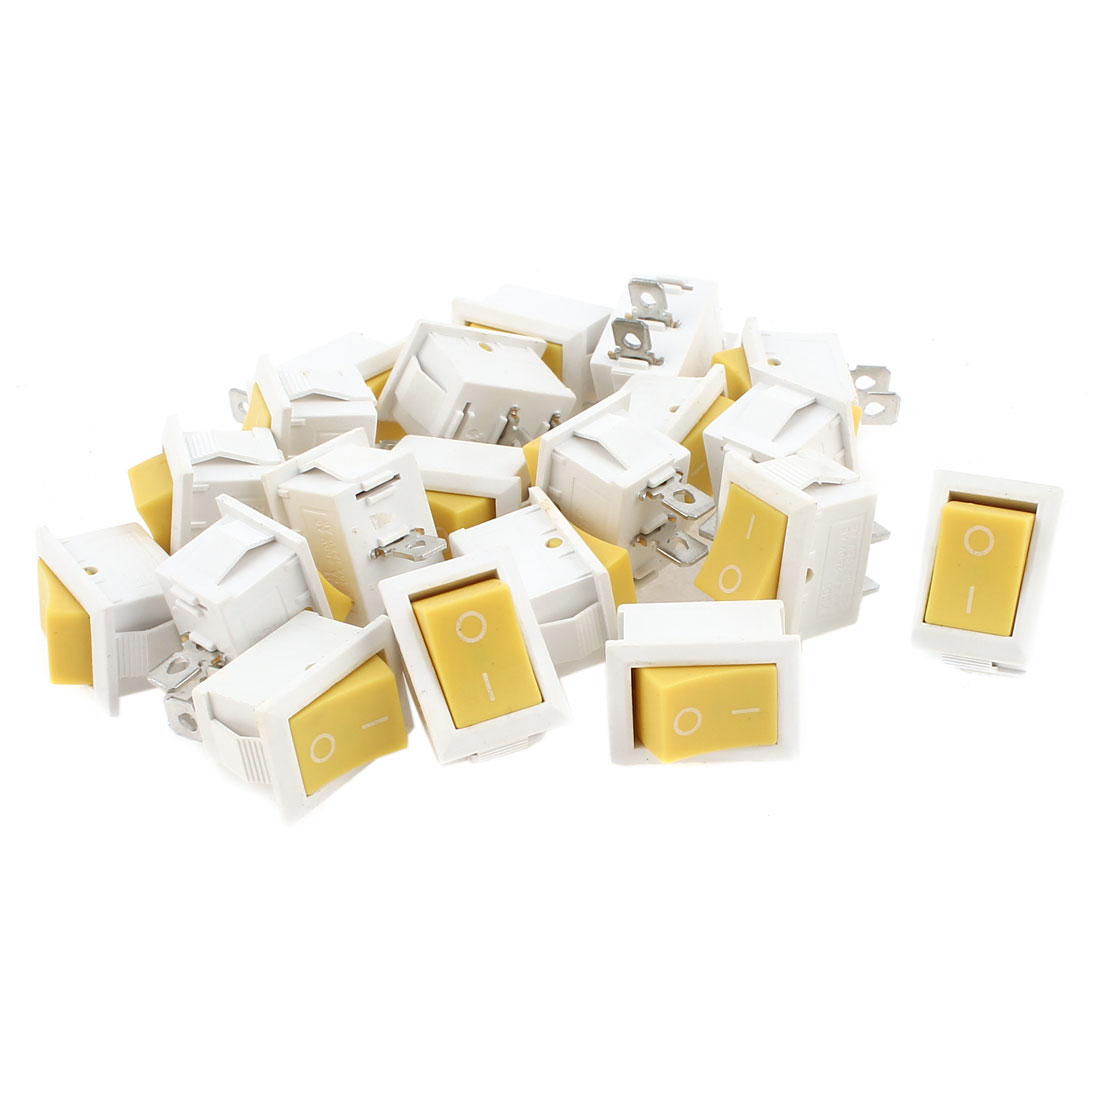 20 Pcs AC 250V/125V 10A/6A ON/OFF 2 Position KCD1 Snap in White Yellow Button Boat Rocker Switch